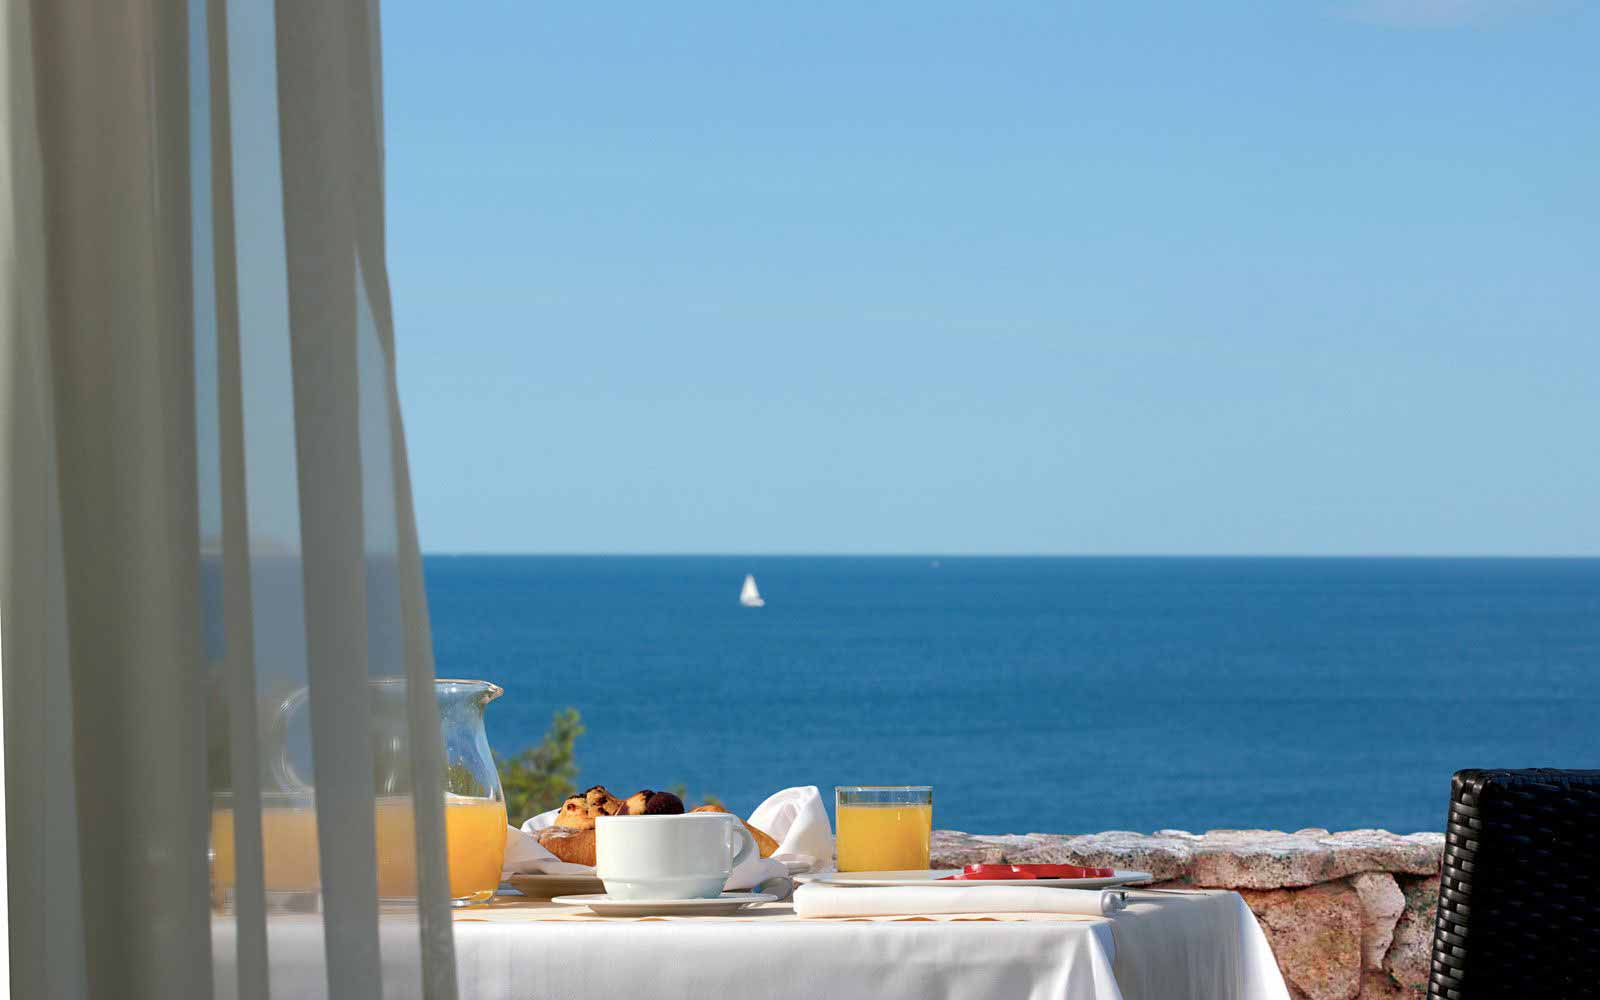 Breakfast at Arbatax Park Resort - Hotel Monteturri